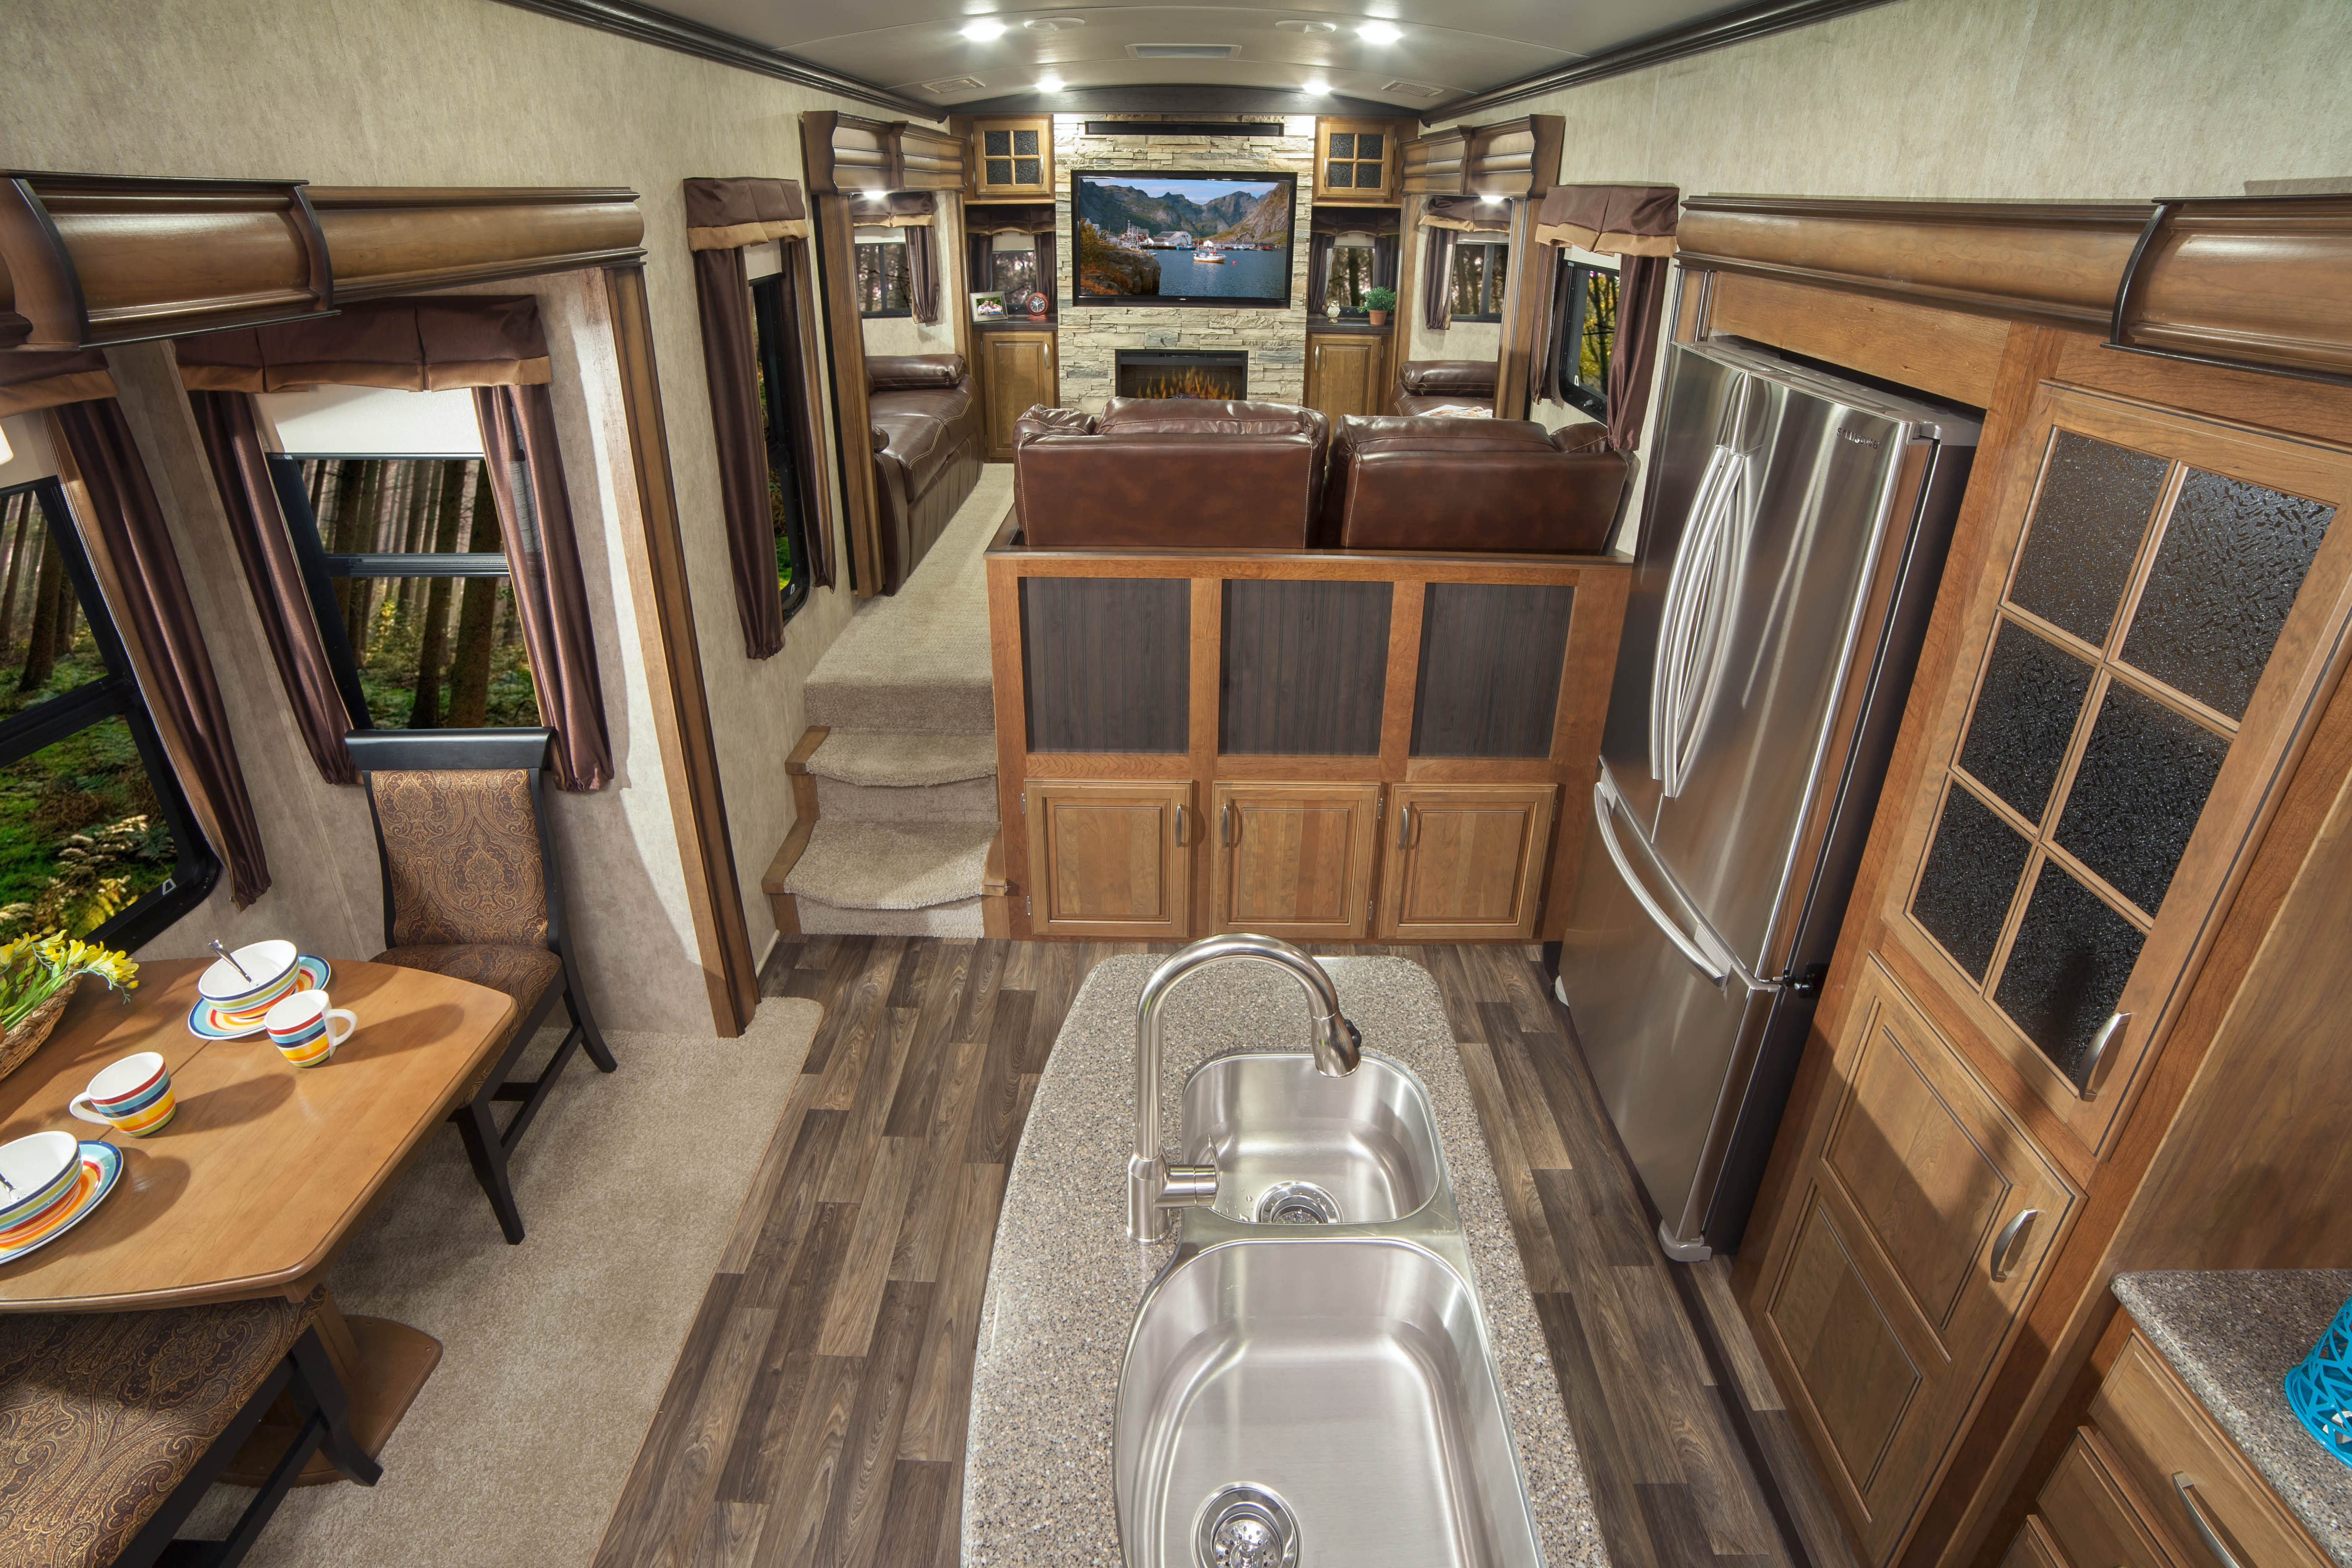 2005 jayco jay flight 29bhs owners manual